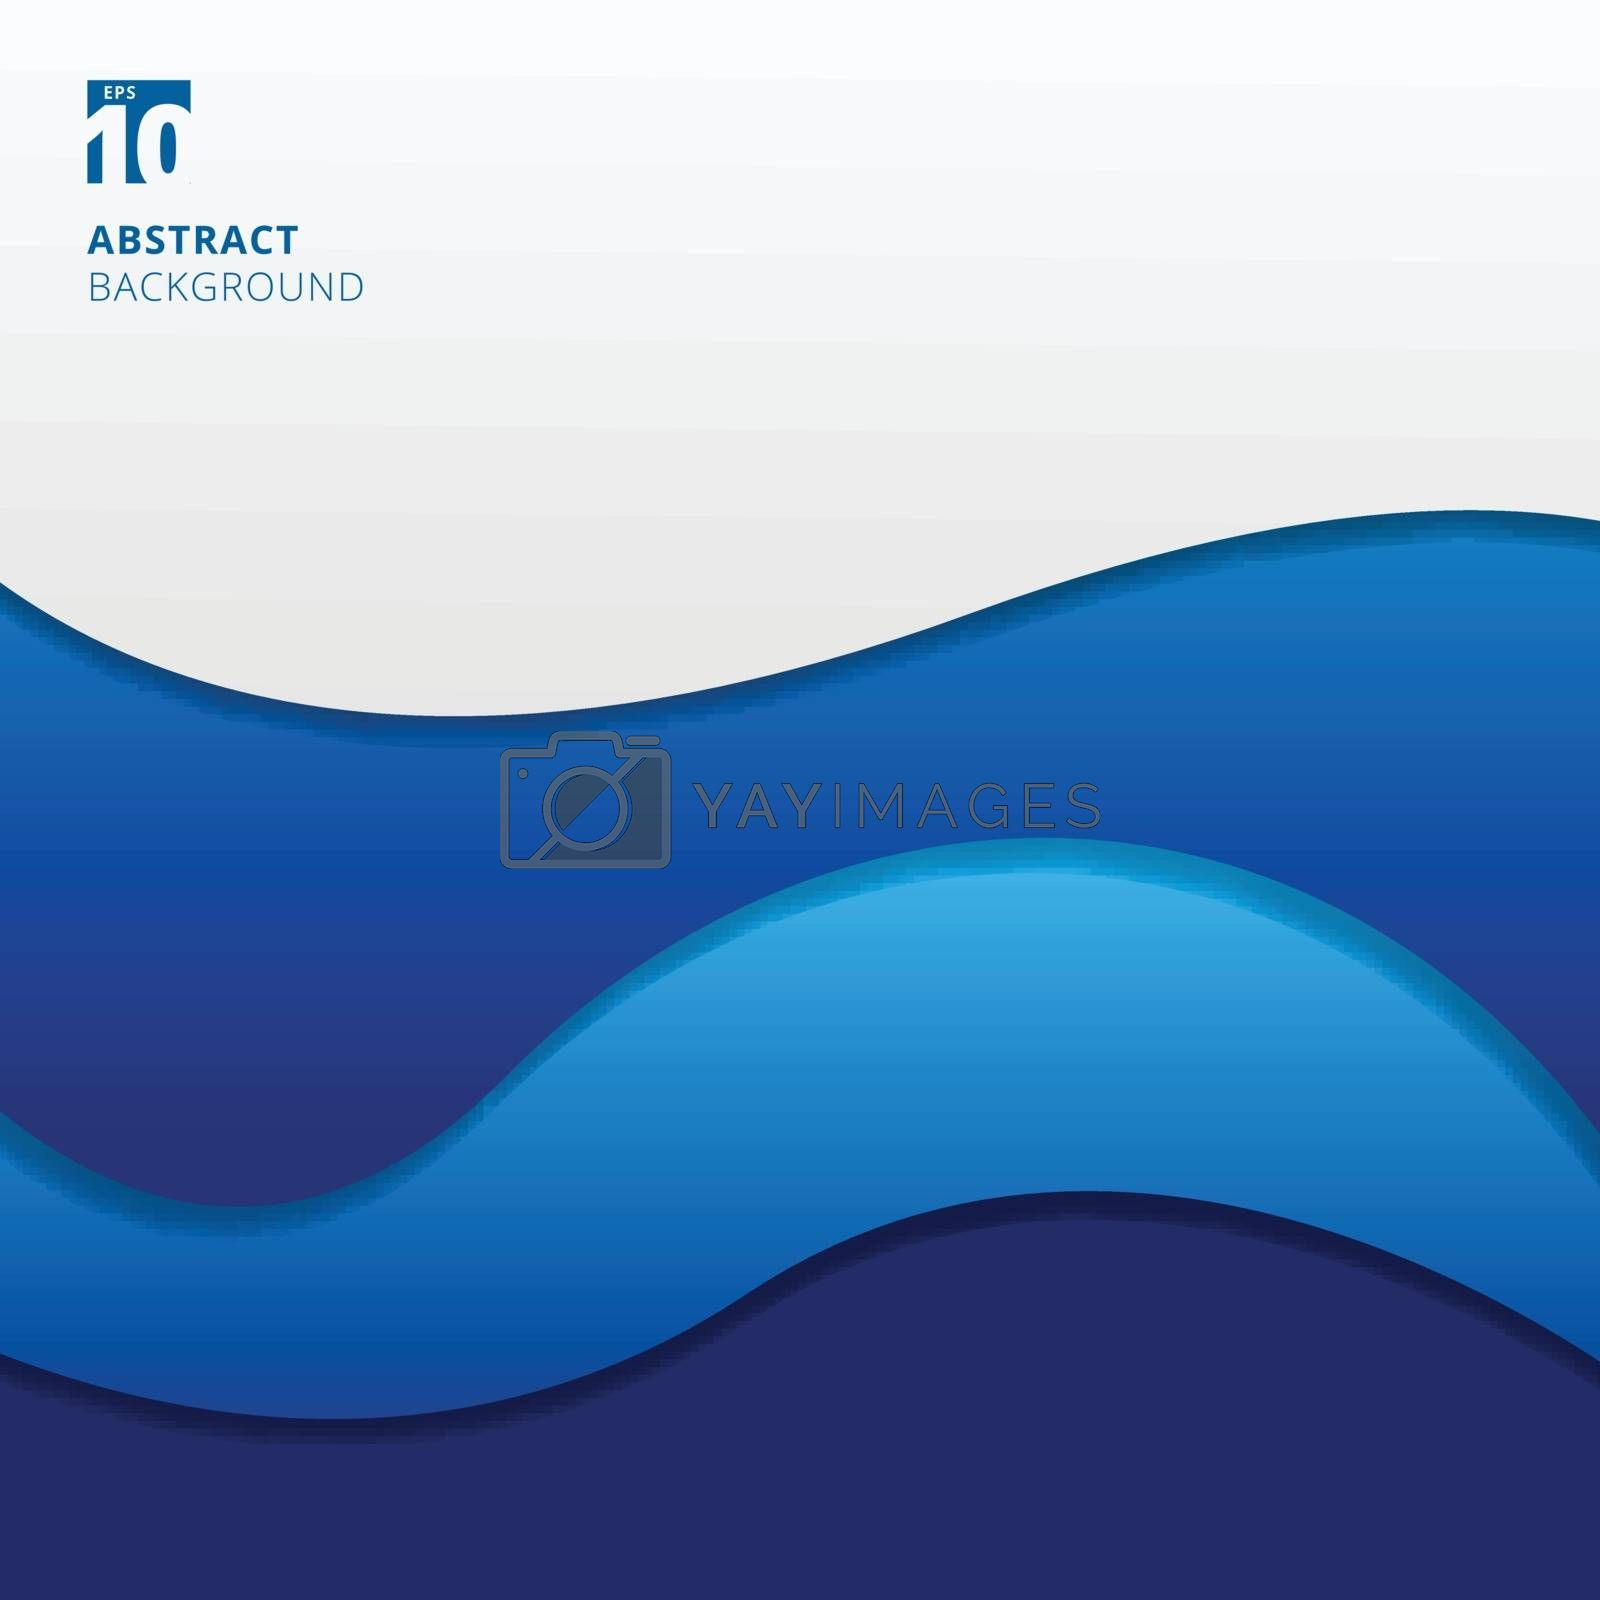 Abstract blue waves background with copy space. You can use for brochure, presentation, poster, leaflet, flyer, print, advertising, banner, website. Vector illustration